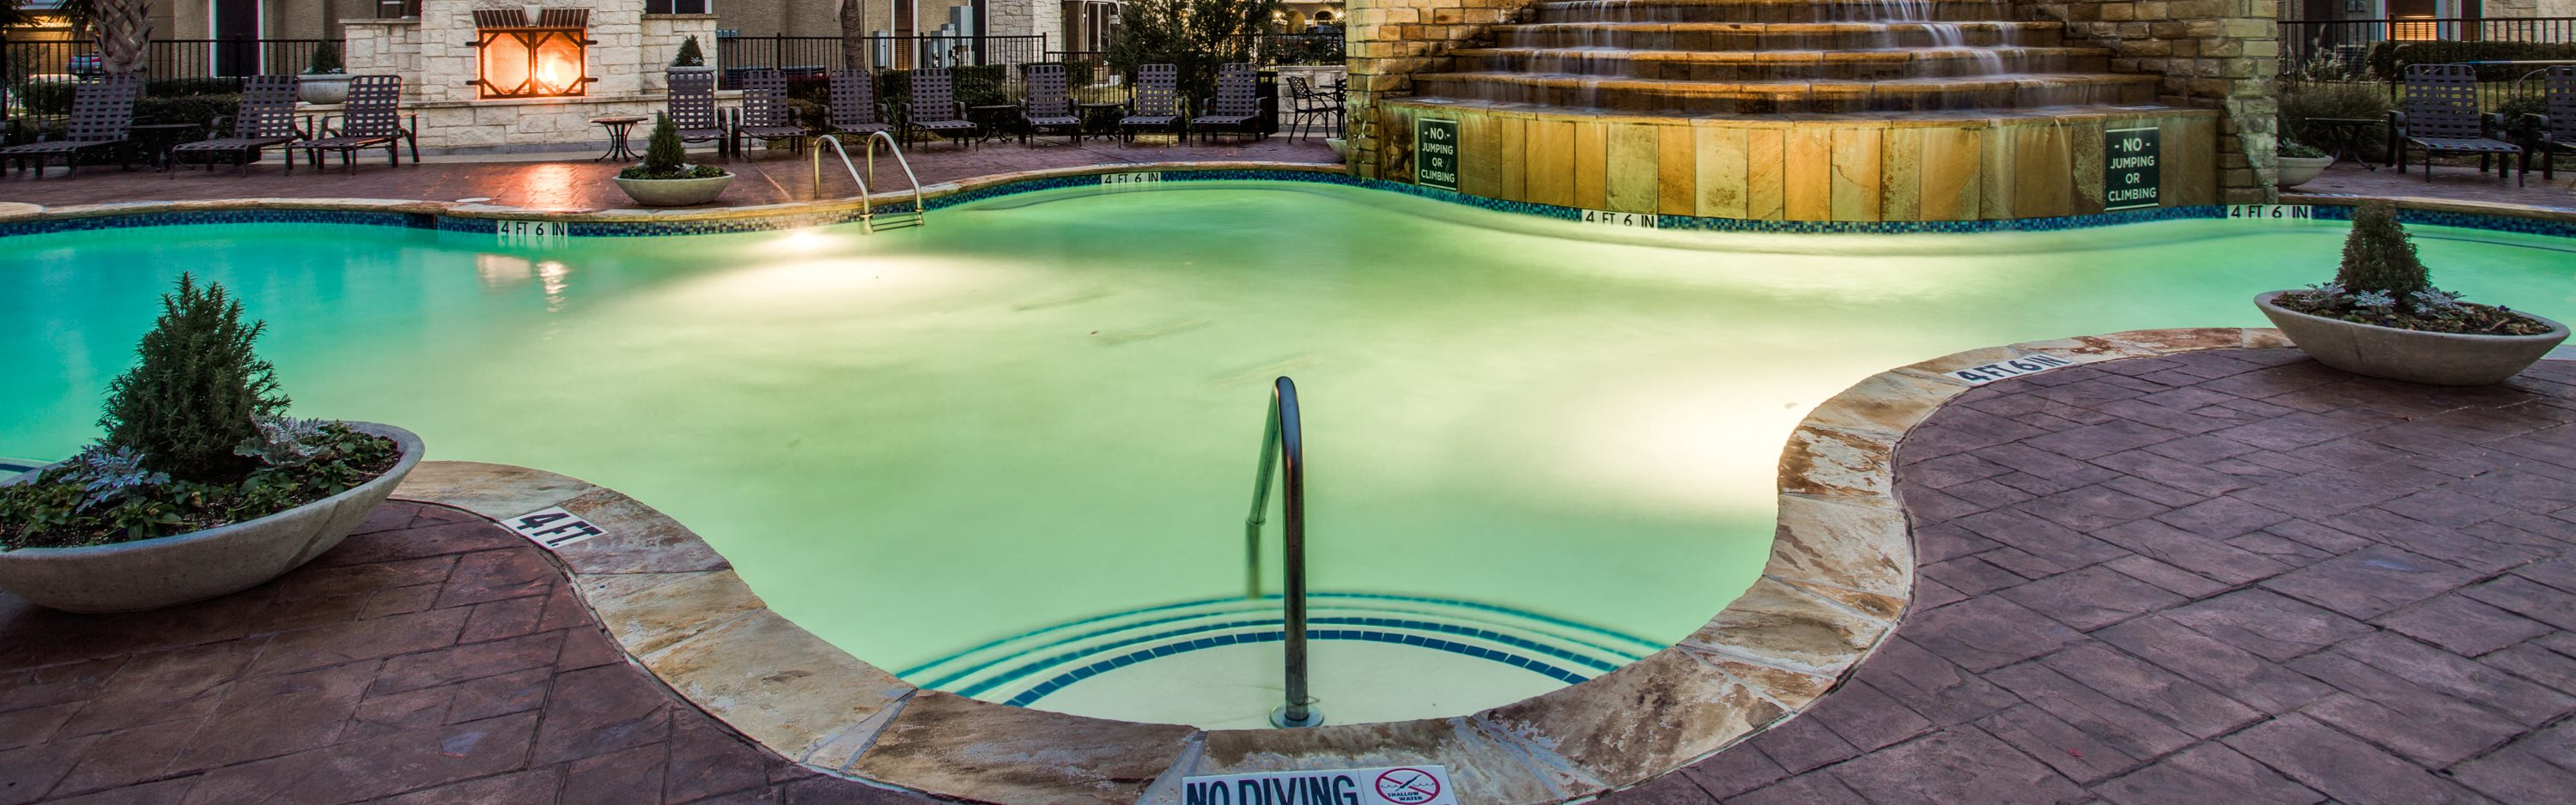 Sparkling Swimming Pool at Orion Prosper Lakes